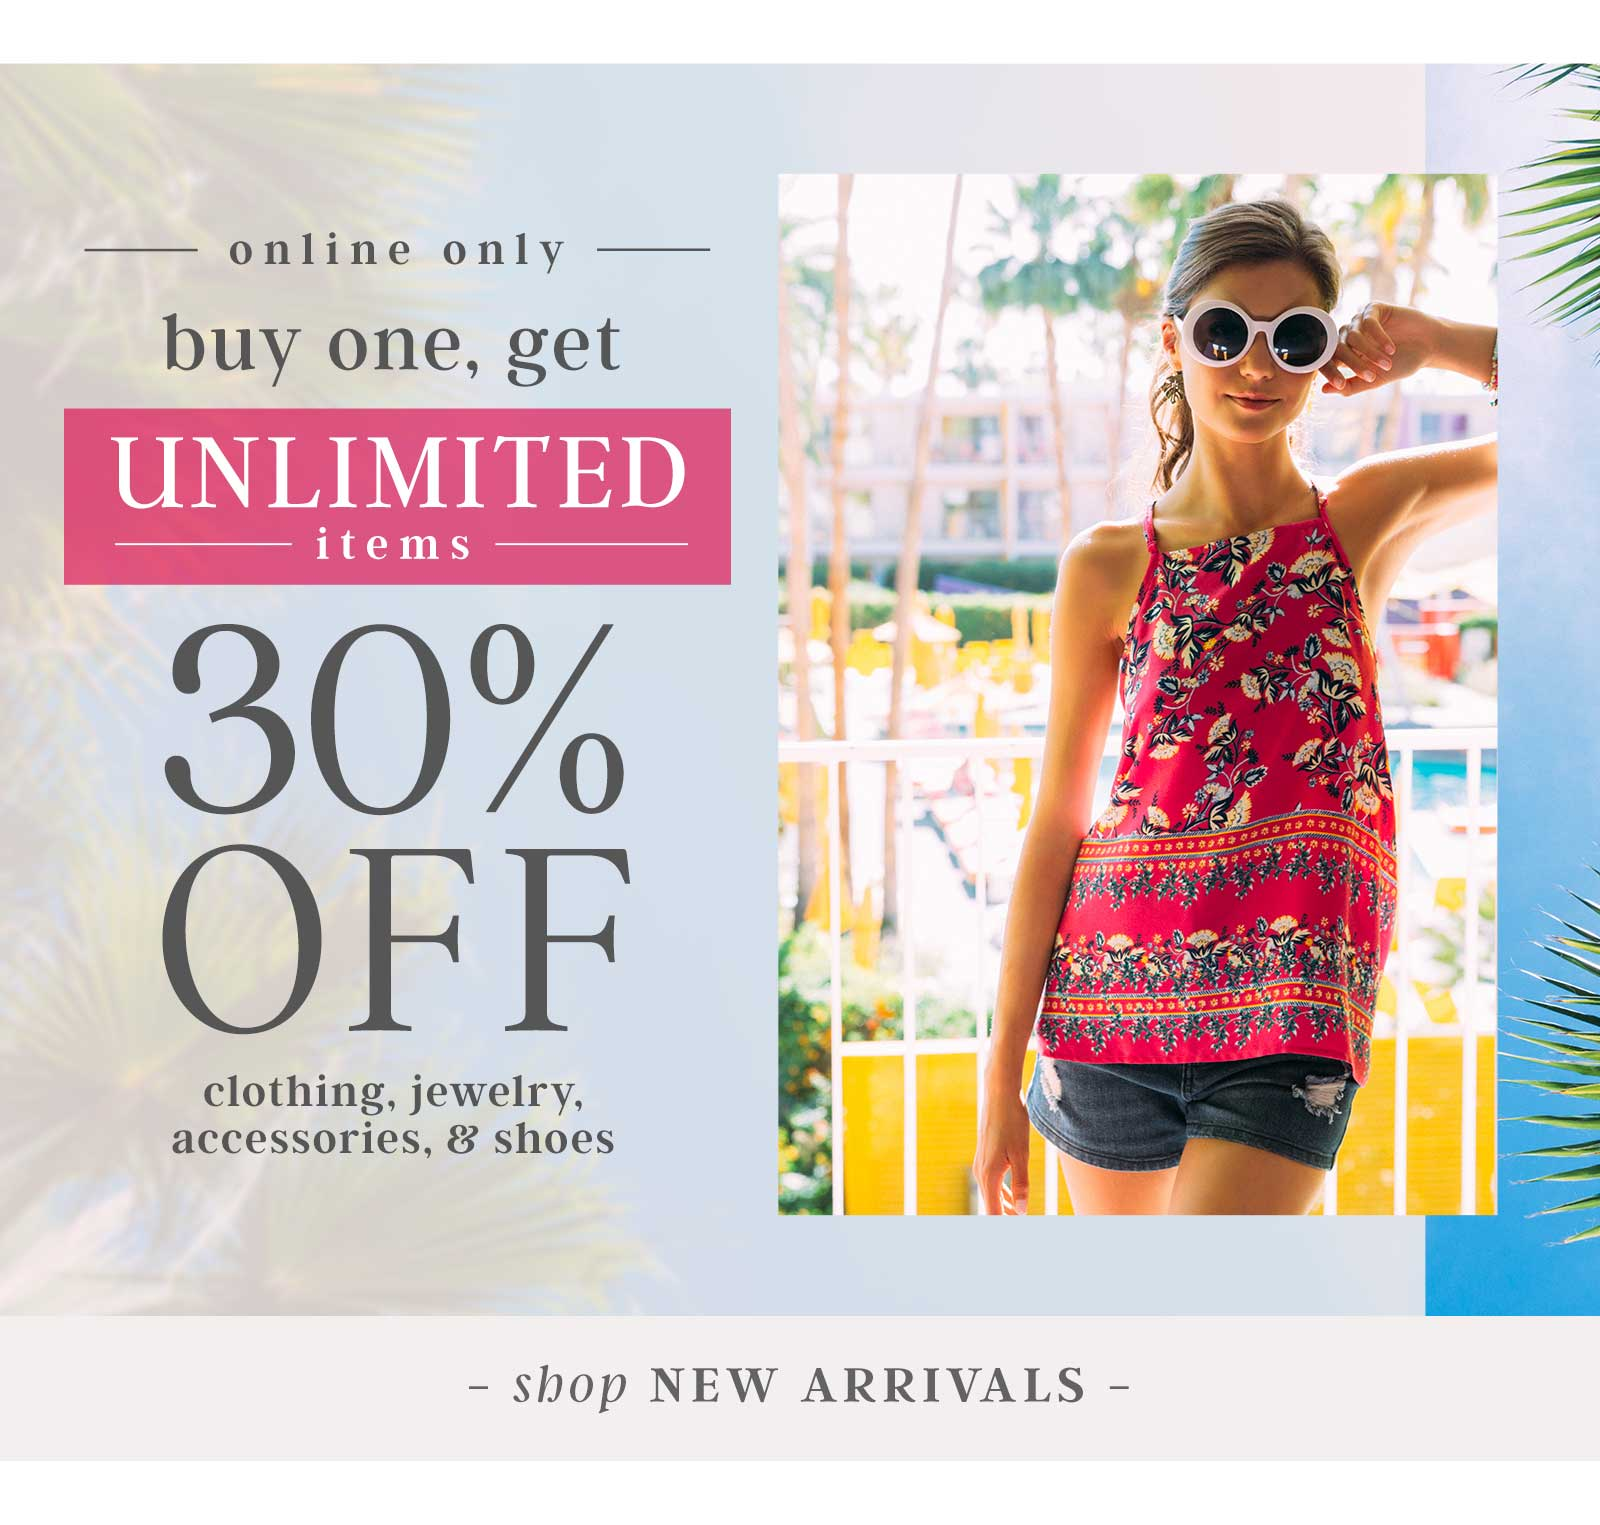 Buy one, Get UNLIMITED items - Shop New Arrivals